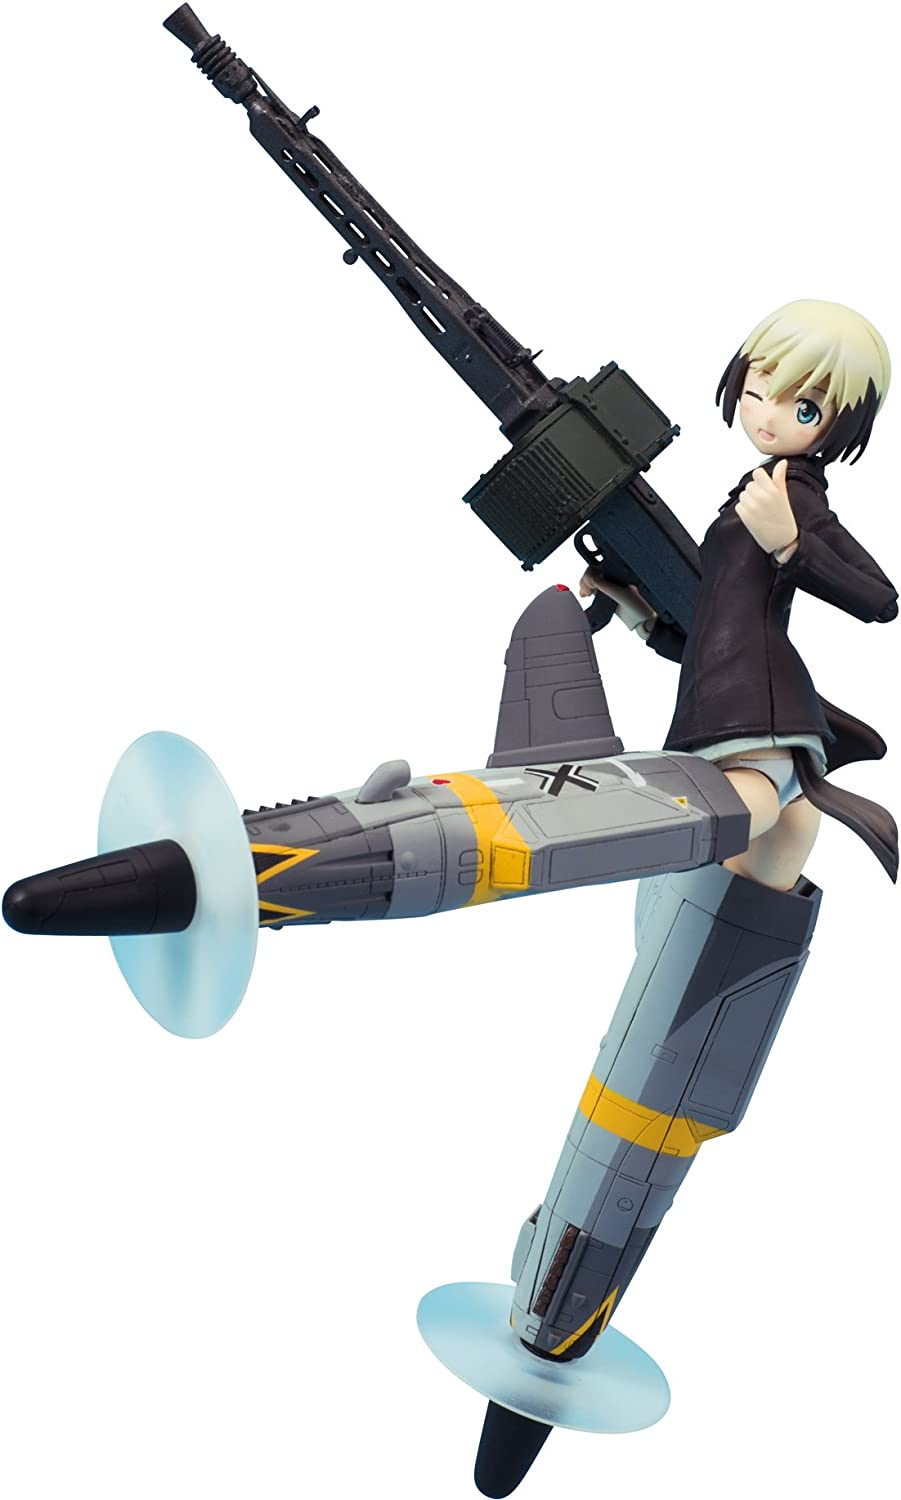 Armor Girls Project Bluefin Distribution Toys 77953 Bandai Tamashii Nations Erica Hartmann Strike Witches 2